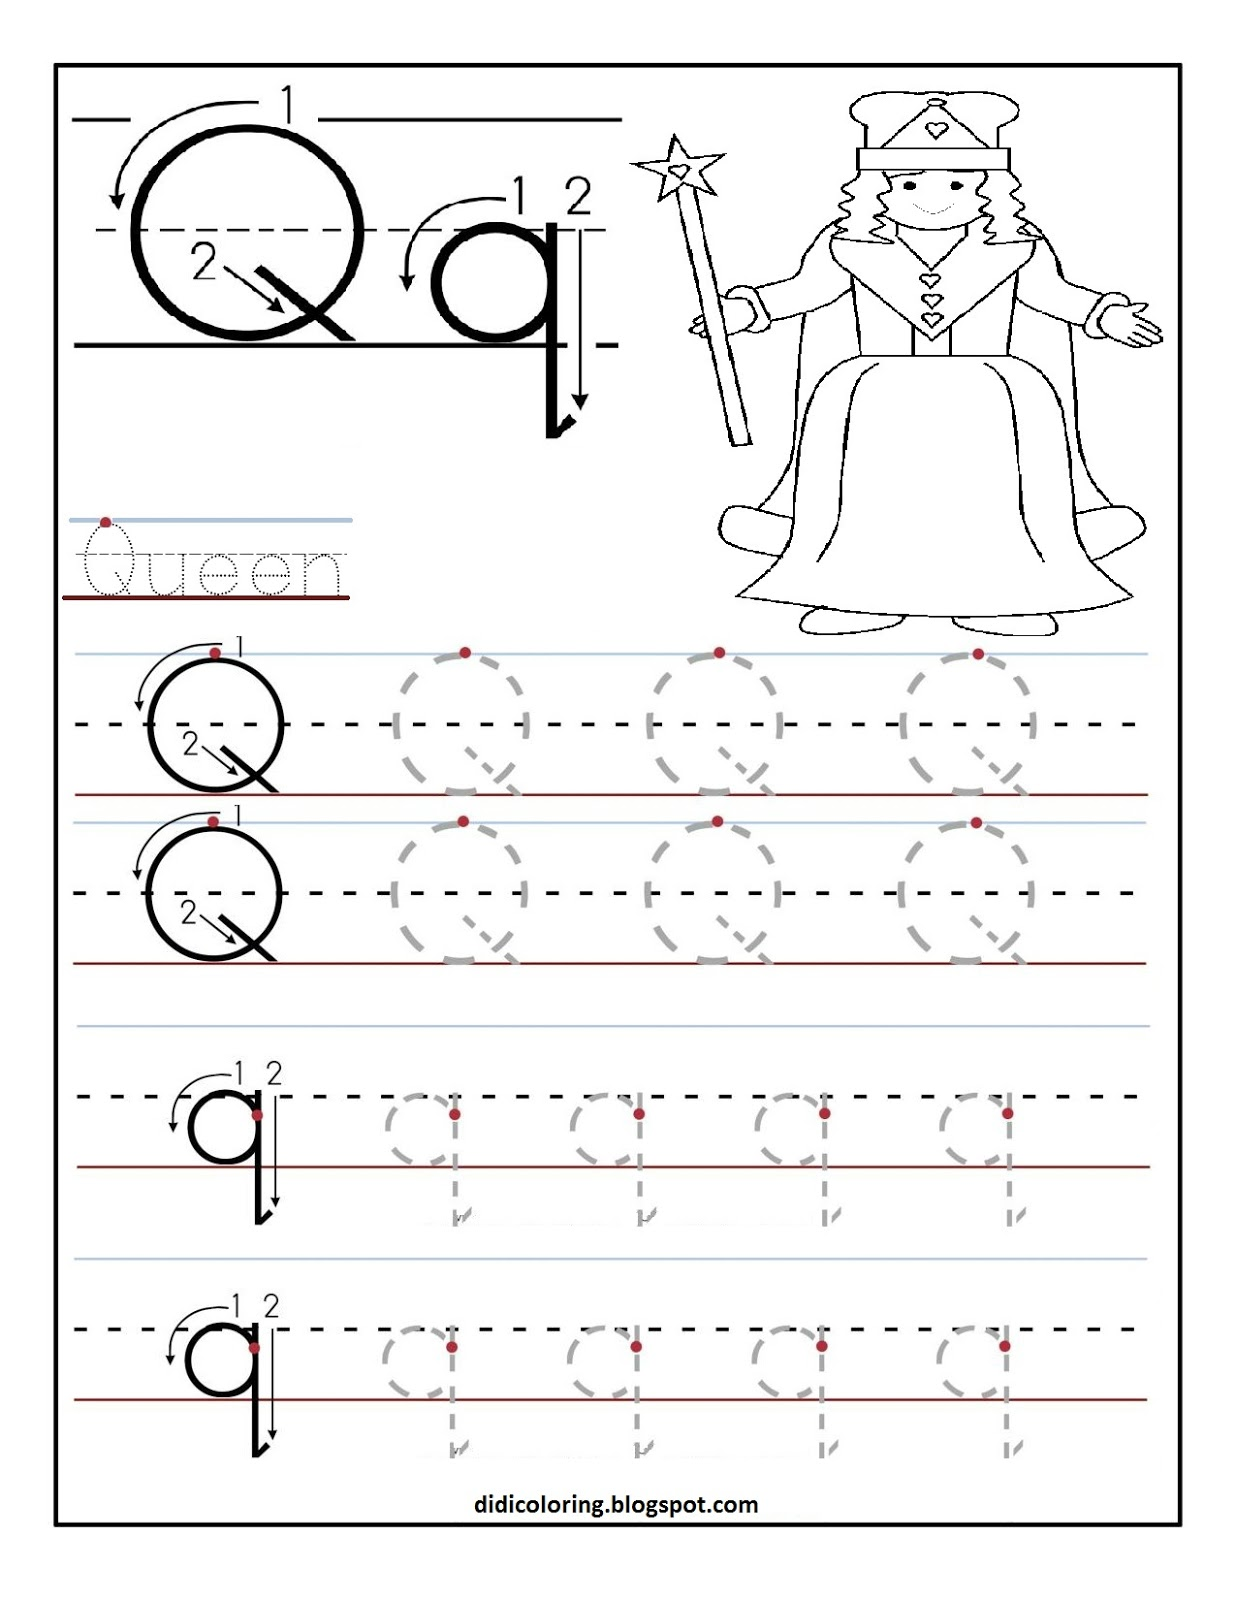 Didi coloring Page: Free printable worksheet letter Q for your